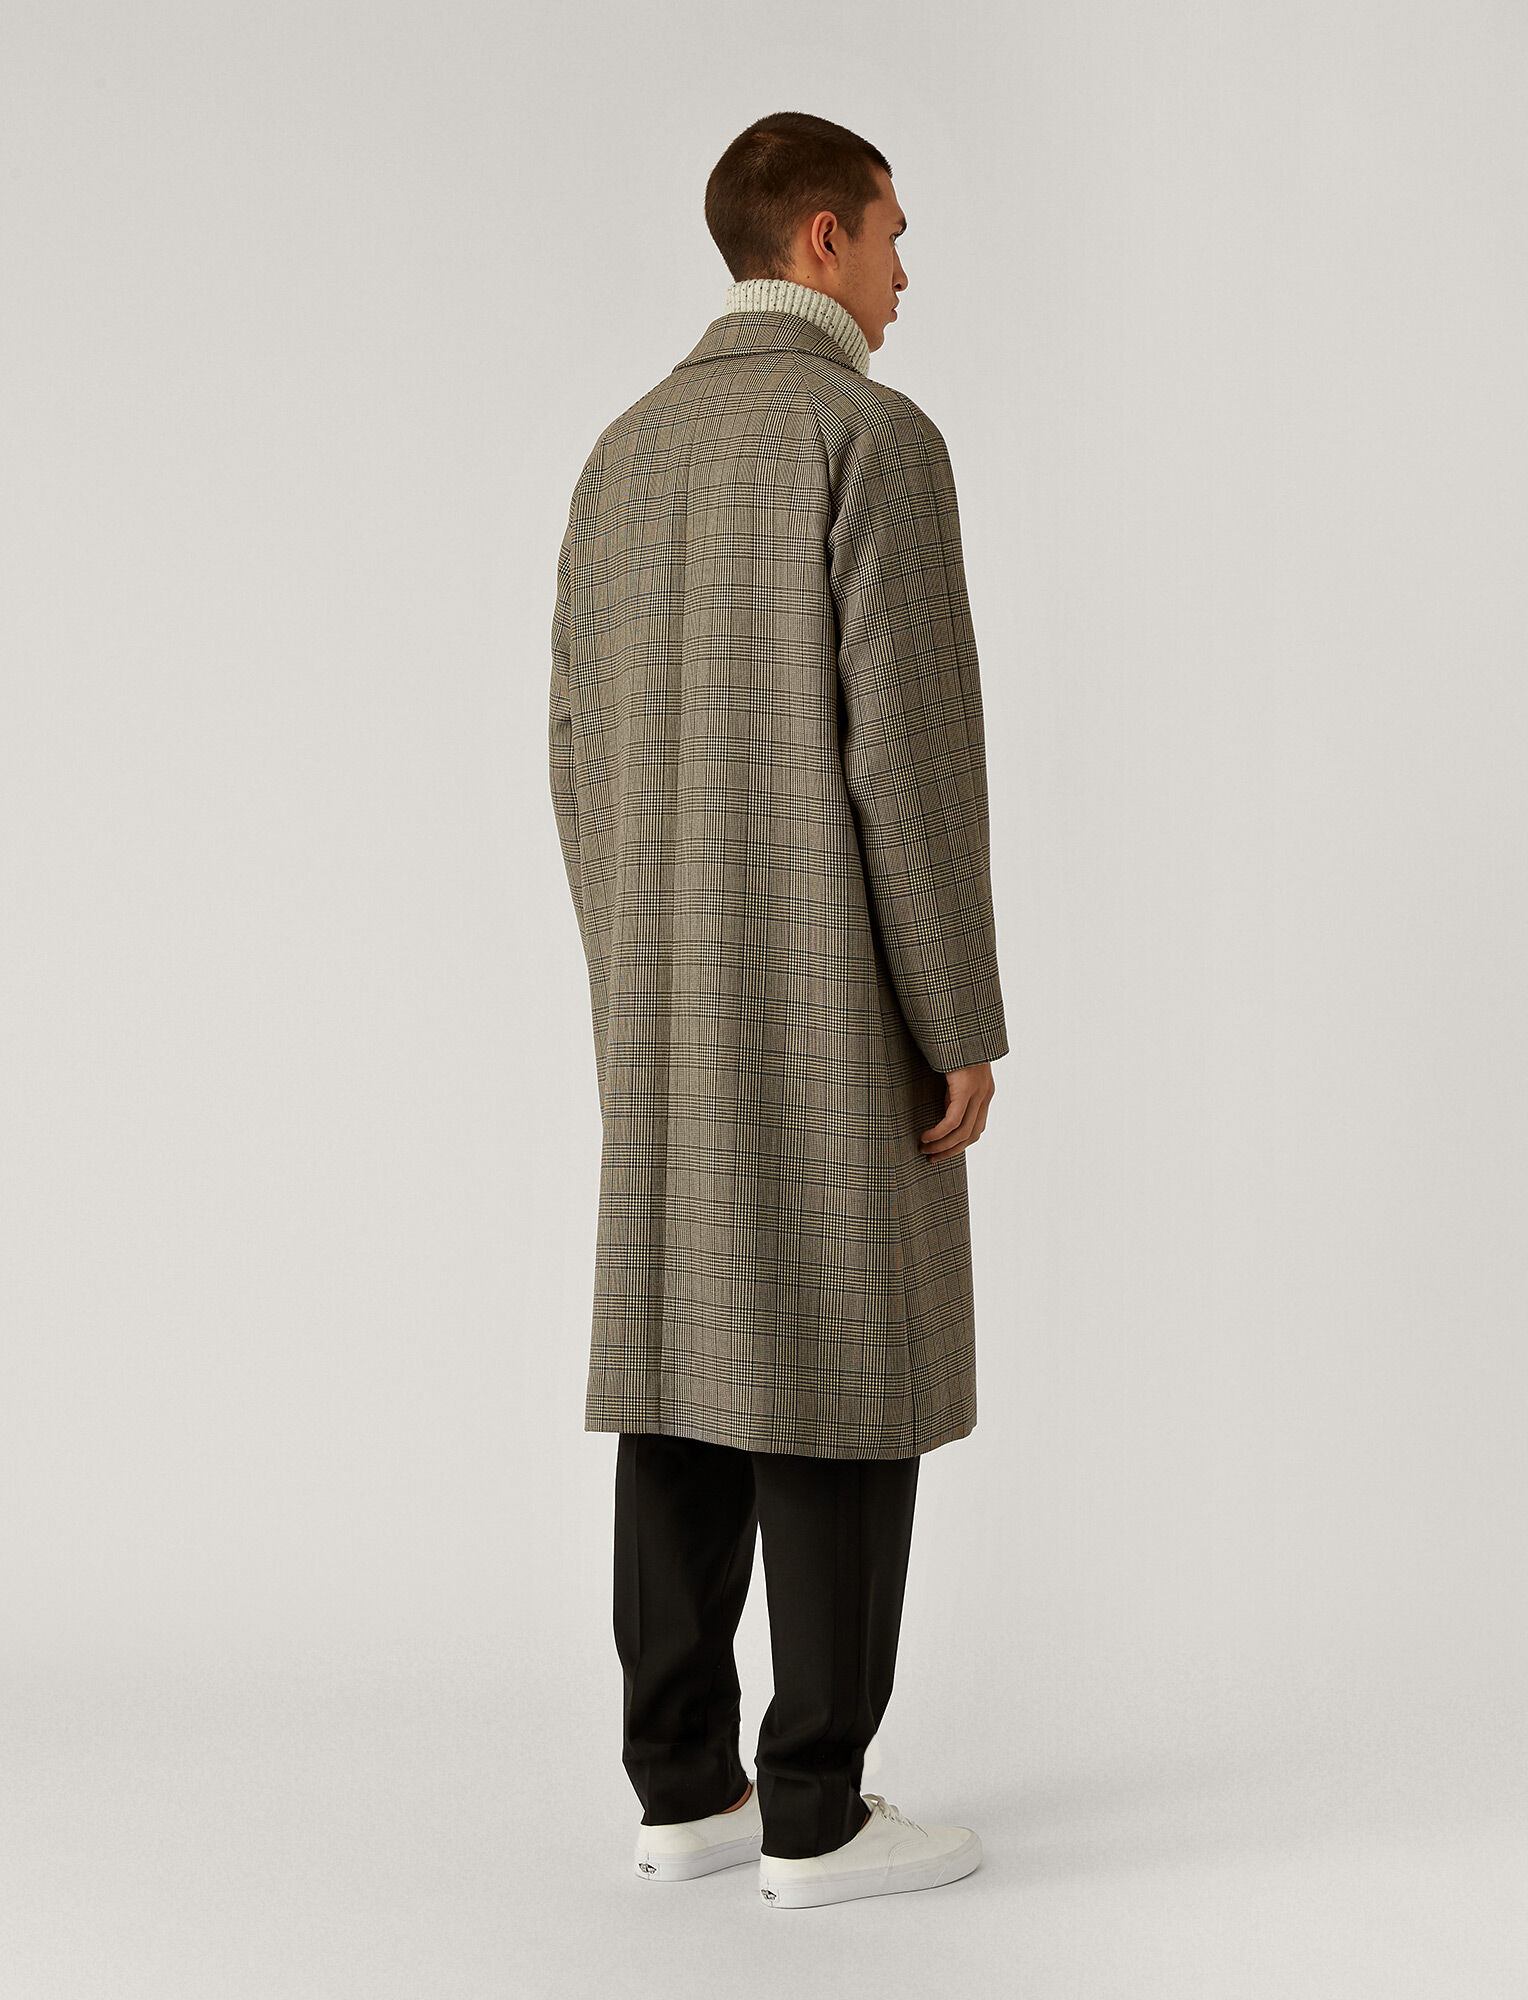 Joseph, Worsted Double Cloth Coat, in Beige